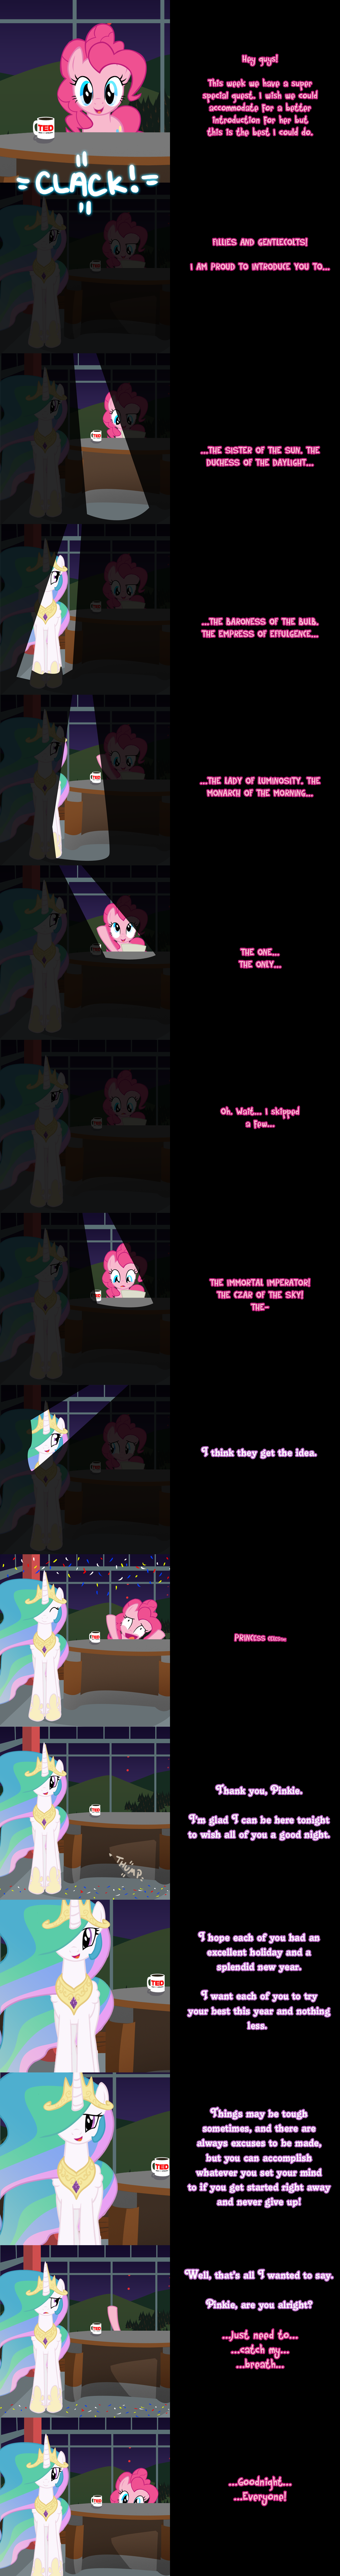 Pinkie Says Goodnight - Princess Presentation by Undead-Niklos